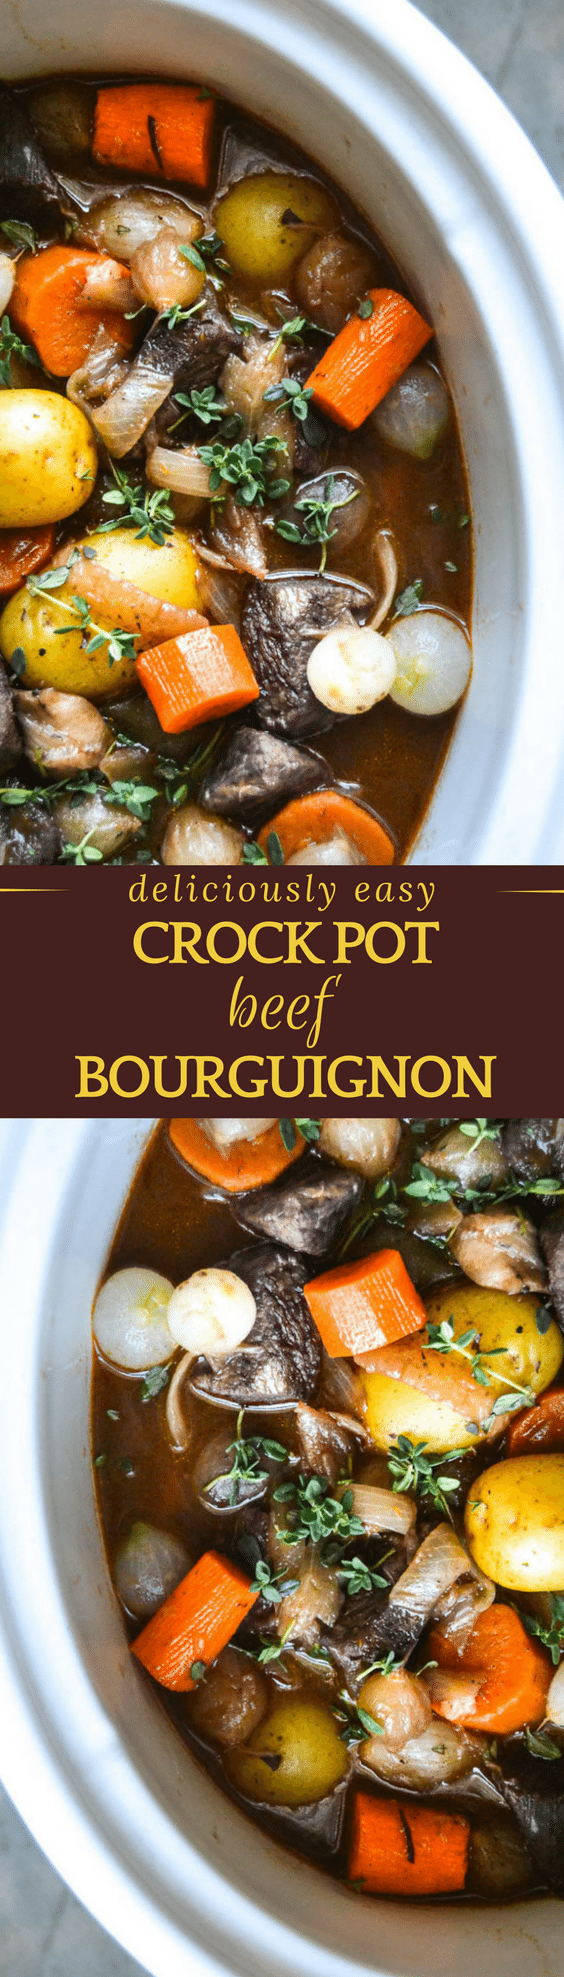 Slow Cooker/Crock Pot Beef Bourguignon is a fix it and forget it meal at its finest ~ this pared down version of the fancy French dish will get rave reviews! #crockpot #slowcooker #beef #certifiedangusbeef #dinner #stew #beefstew #bourguignon #french #beefstewrecipe #comfortfood